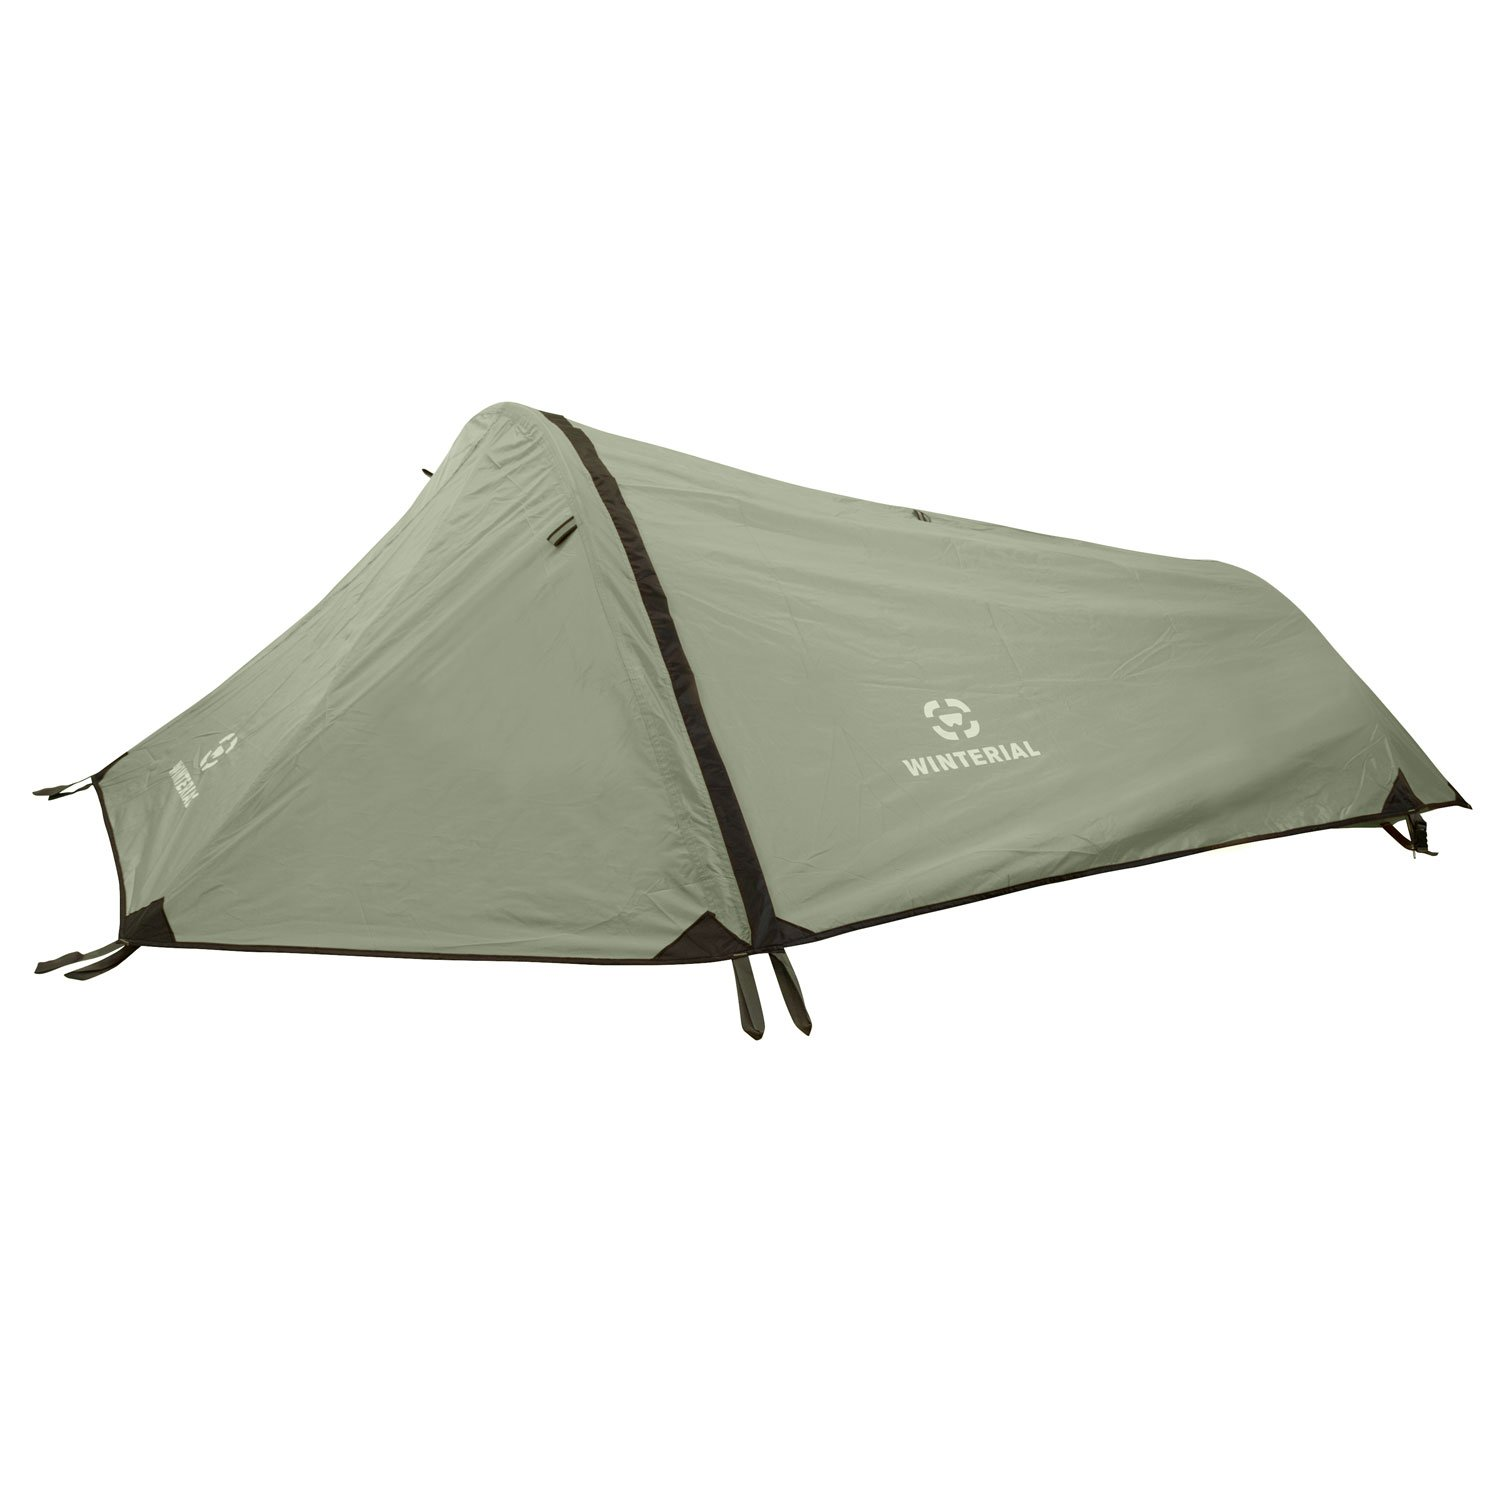 Amazon Archer Outdoor Gear 1 Man Camping & Backpacking Tent